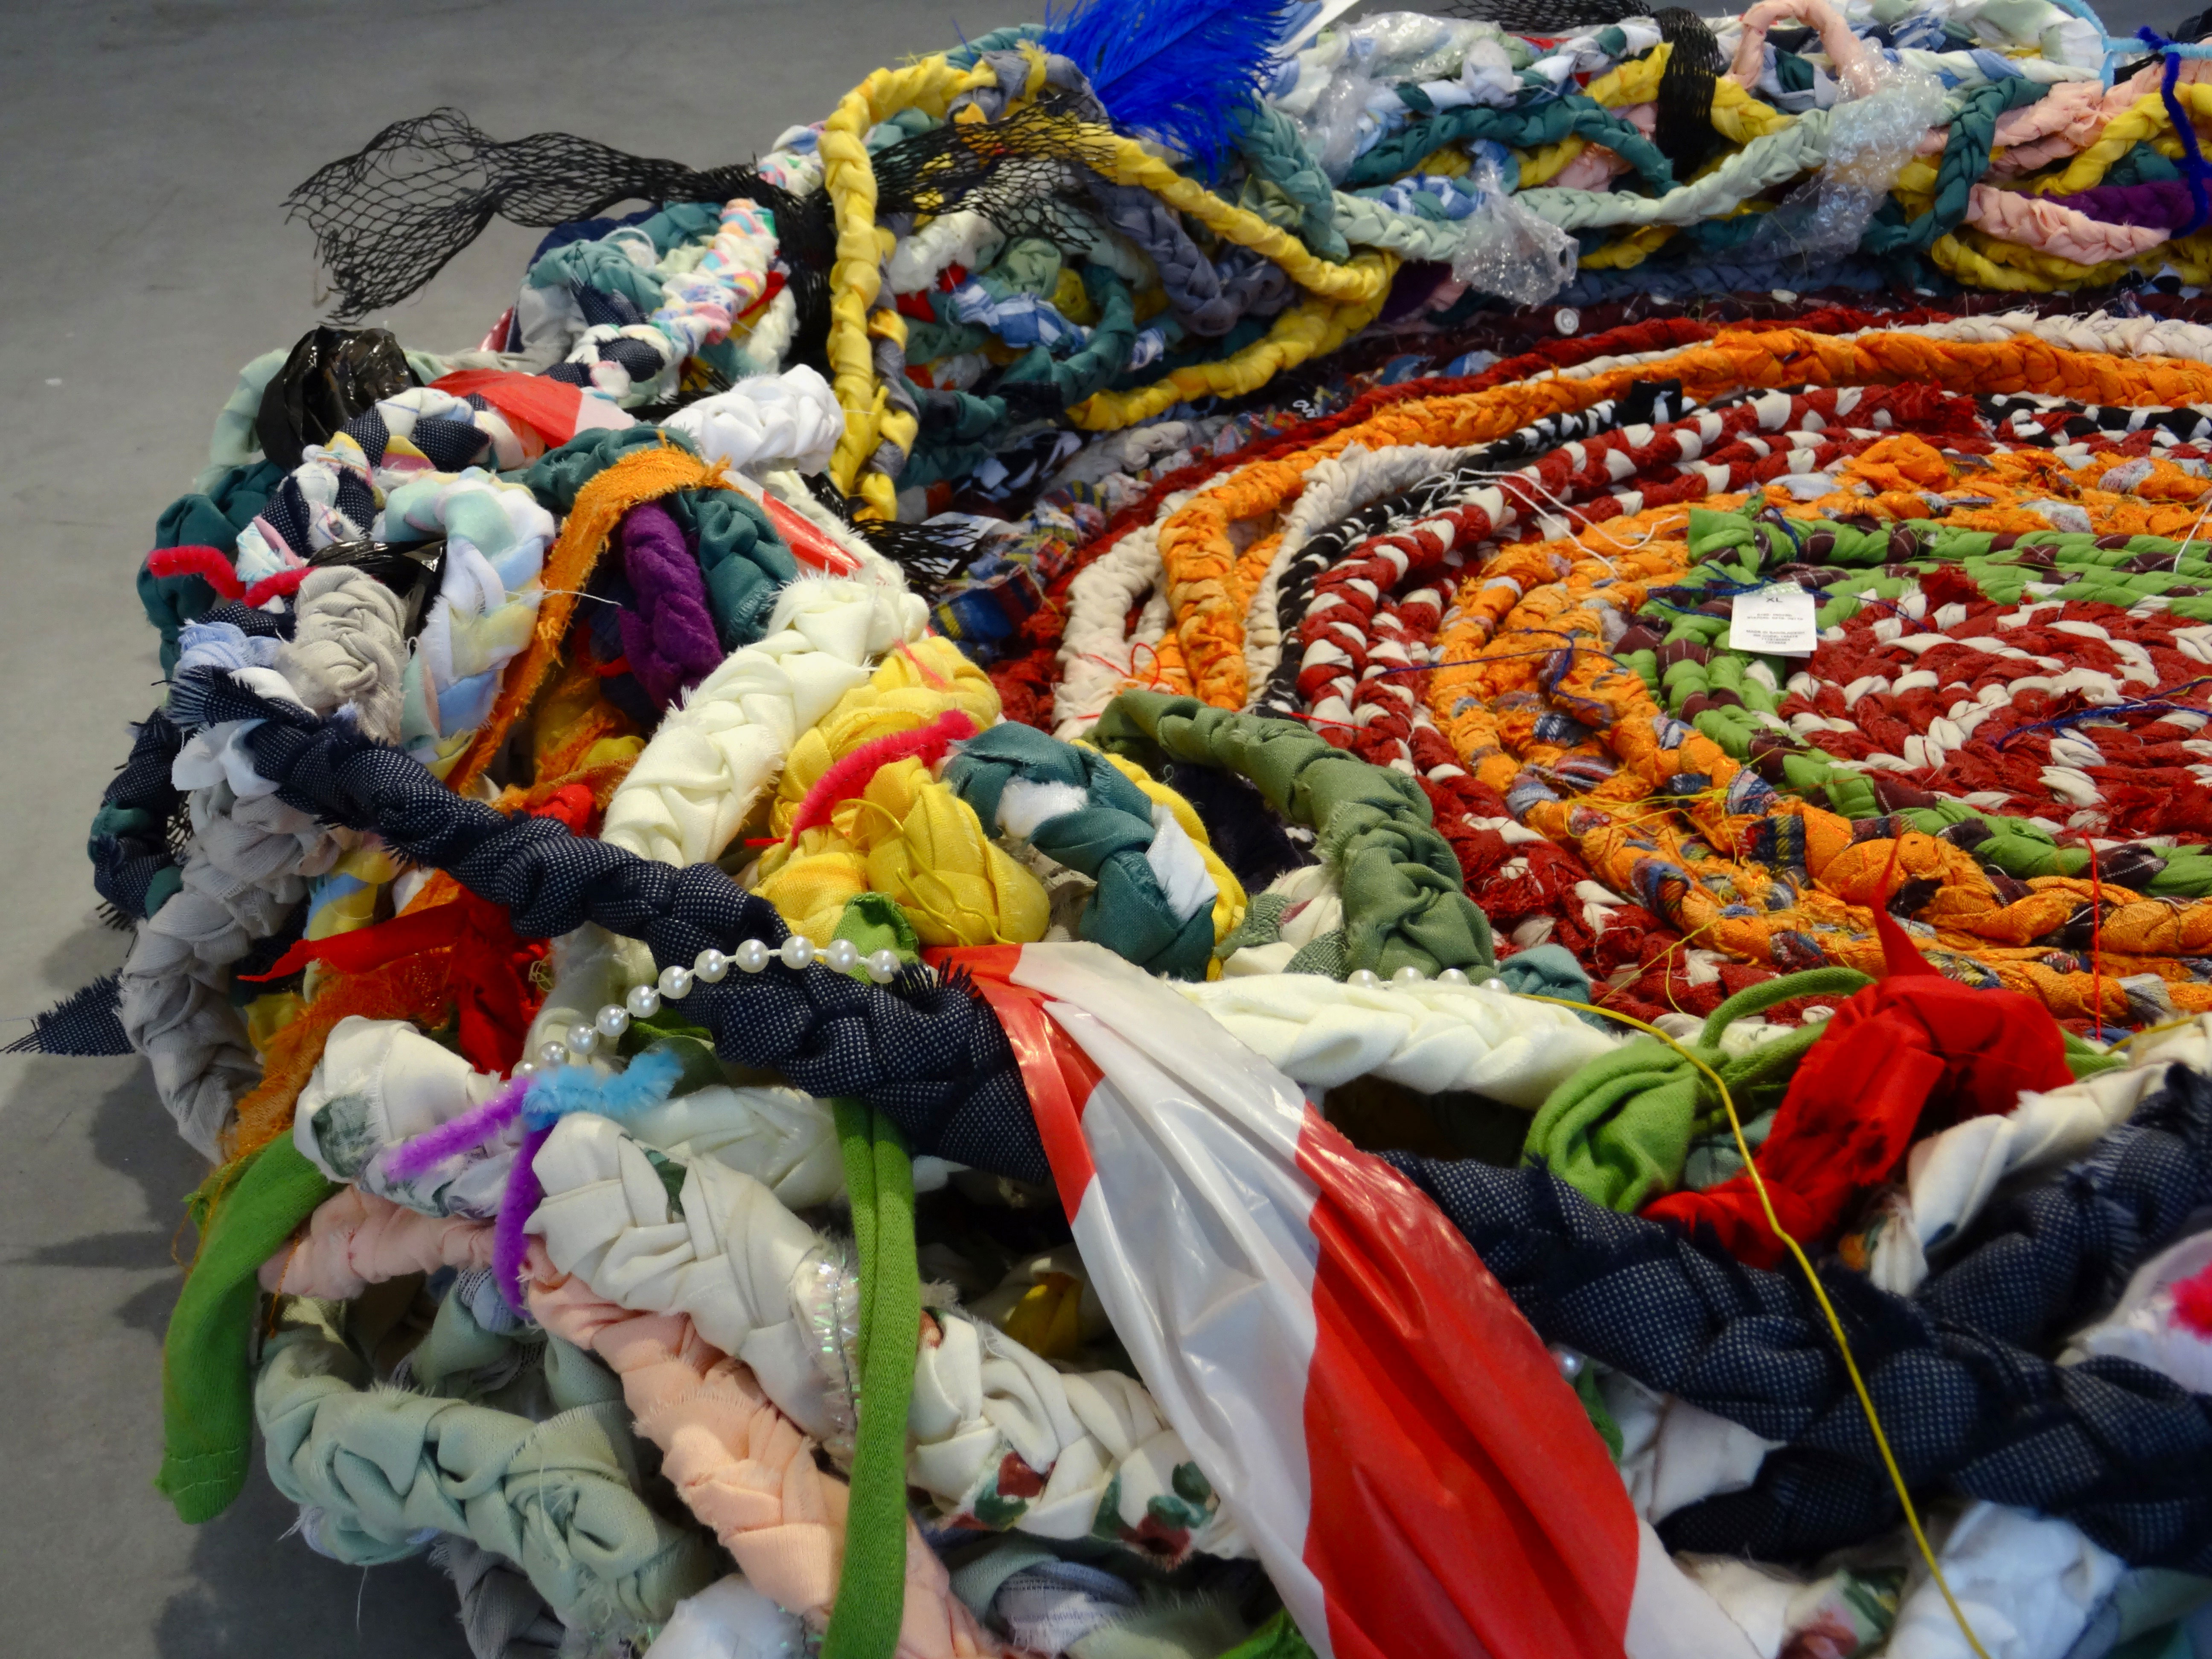 The work resembles a large nest big enough for a human being to sit in. It is made from braided fabric that is spiralled around and there are a variety of materials woven between its layers including feathers, plastic packaging, discarded clothing and costume jewellery. It is brightly coloured from all of the different fabrics used to create the structure. The photograph shows Nest in an exhibition space on a grey floor.